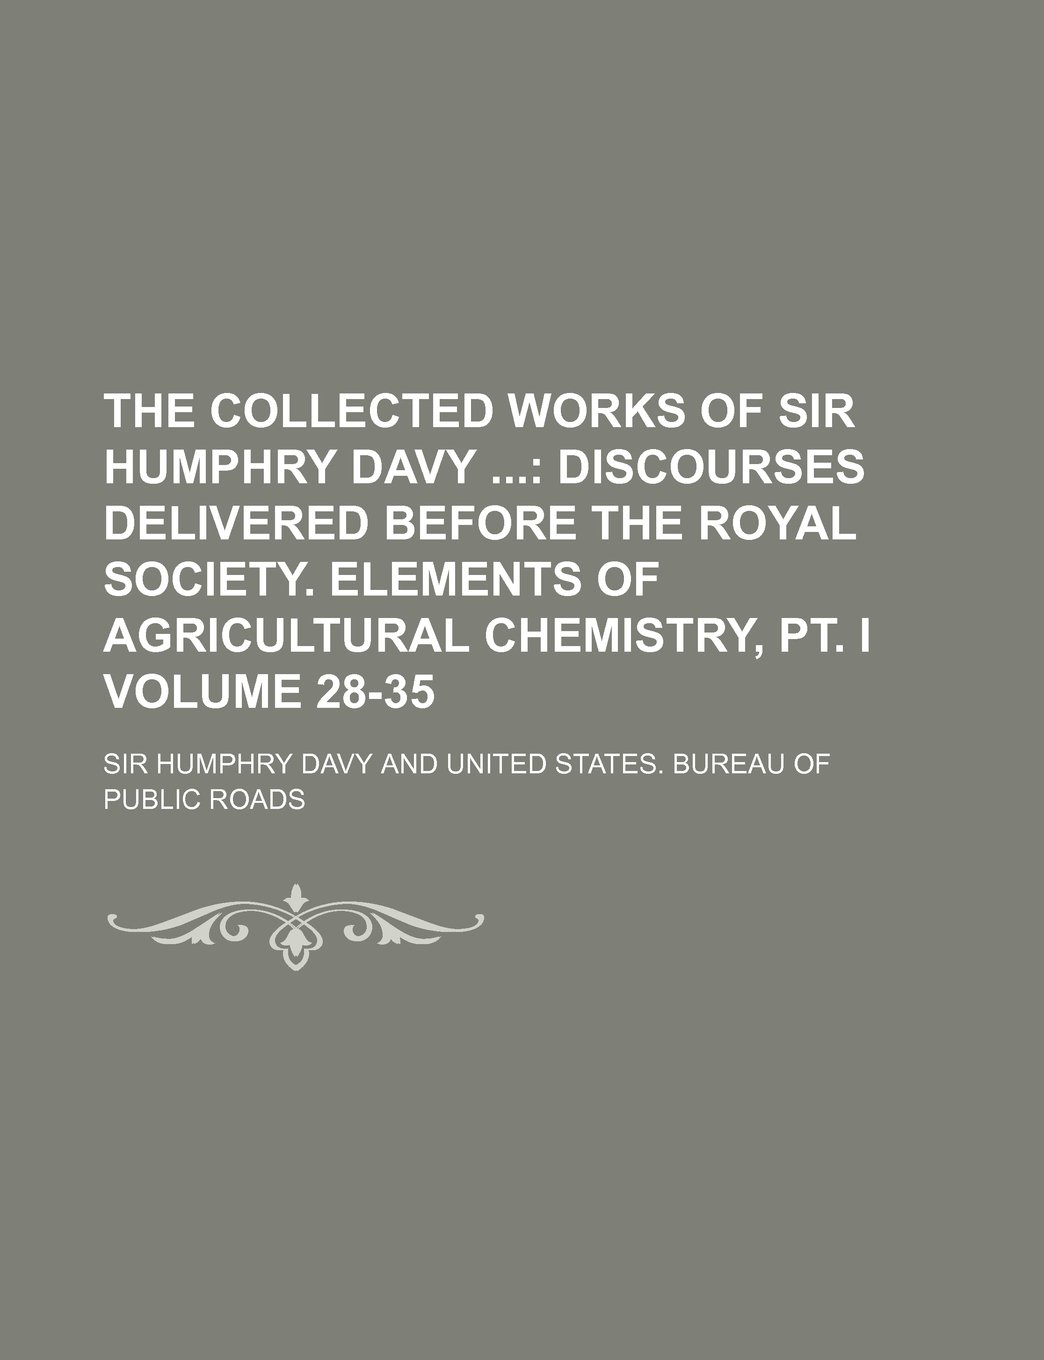 Download The collected works of Sir Humphry Davy  Volume 28-35 ;  Discourses delivered before the Royal society. Elements of agricultural chemistry, pt. I ebook